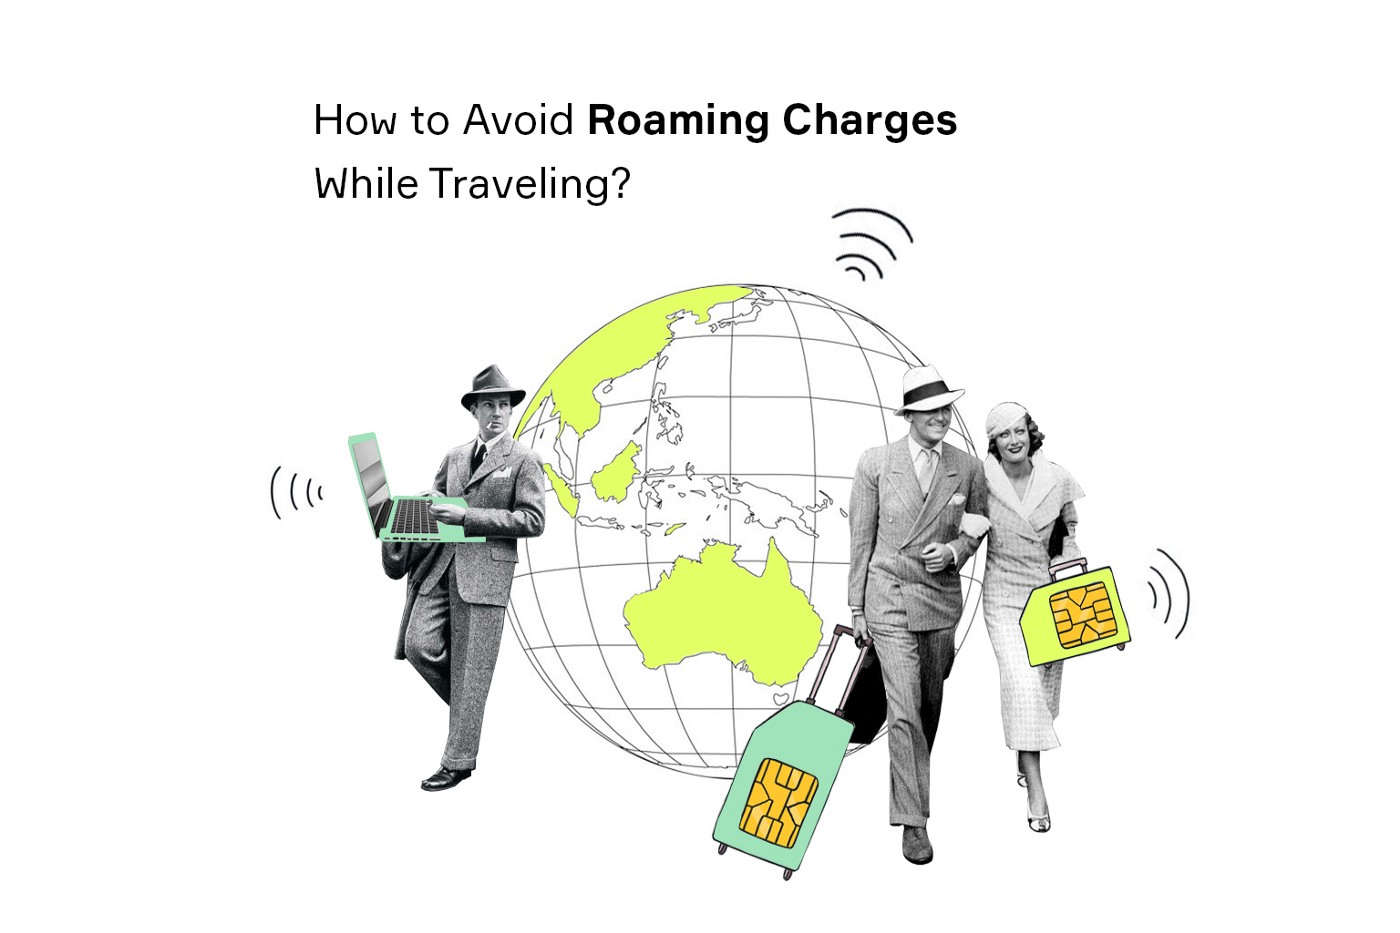 5 Proven Methods to Avoid Roaming Charges While Travelling